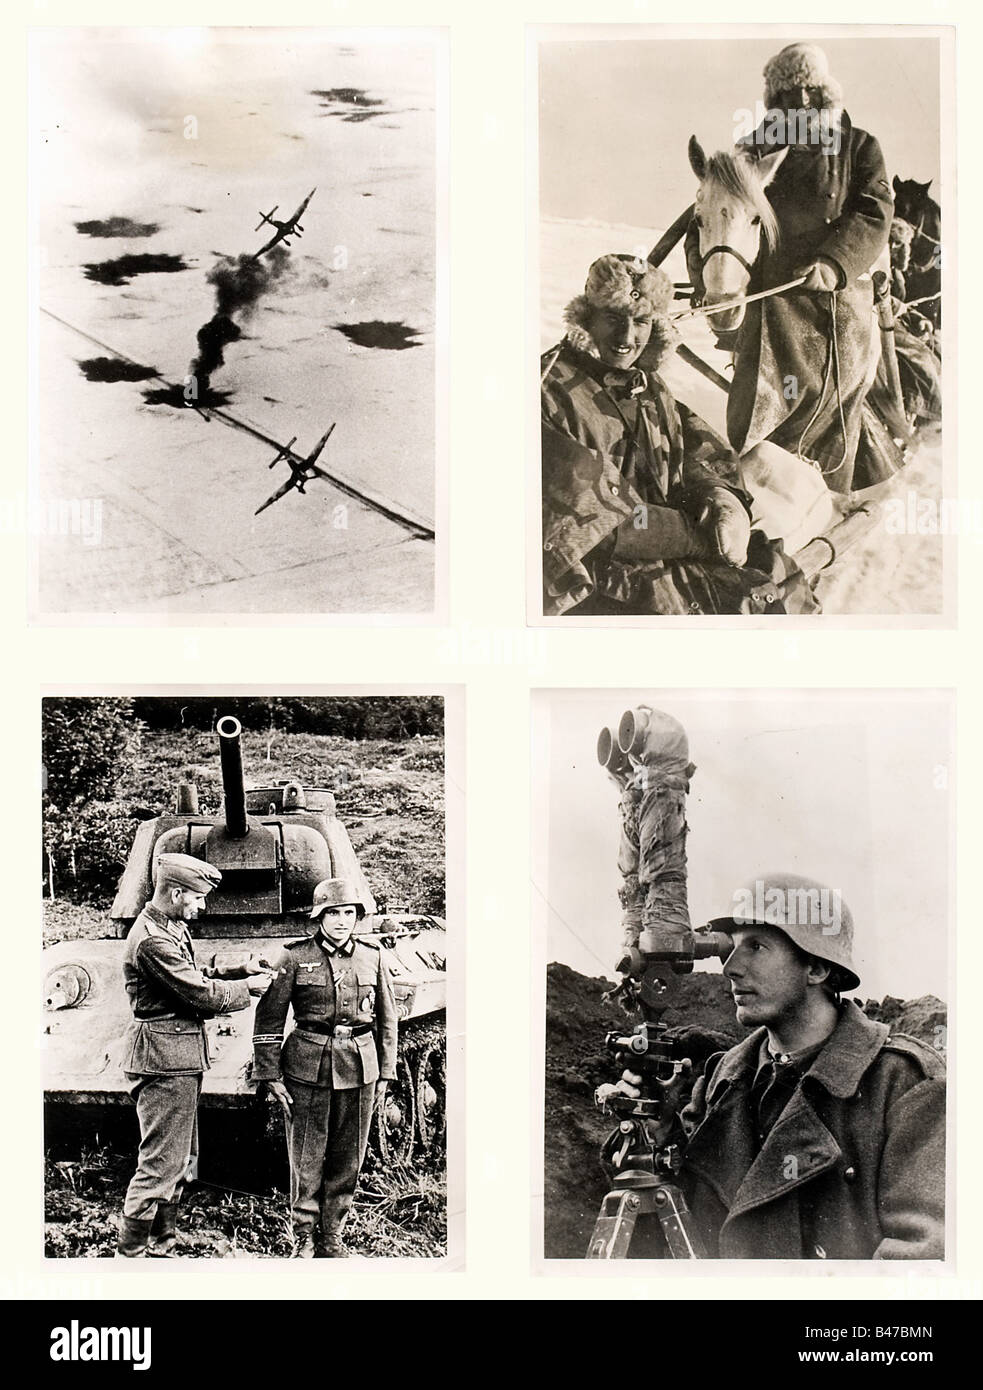 100 newspaper photographs - Russia, period of the Second World War, the Russian Campaign Interesting photos of the - Stock Image